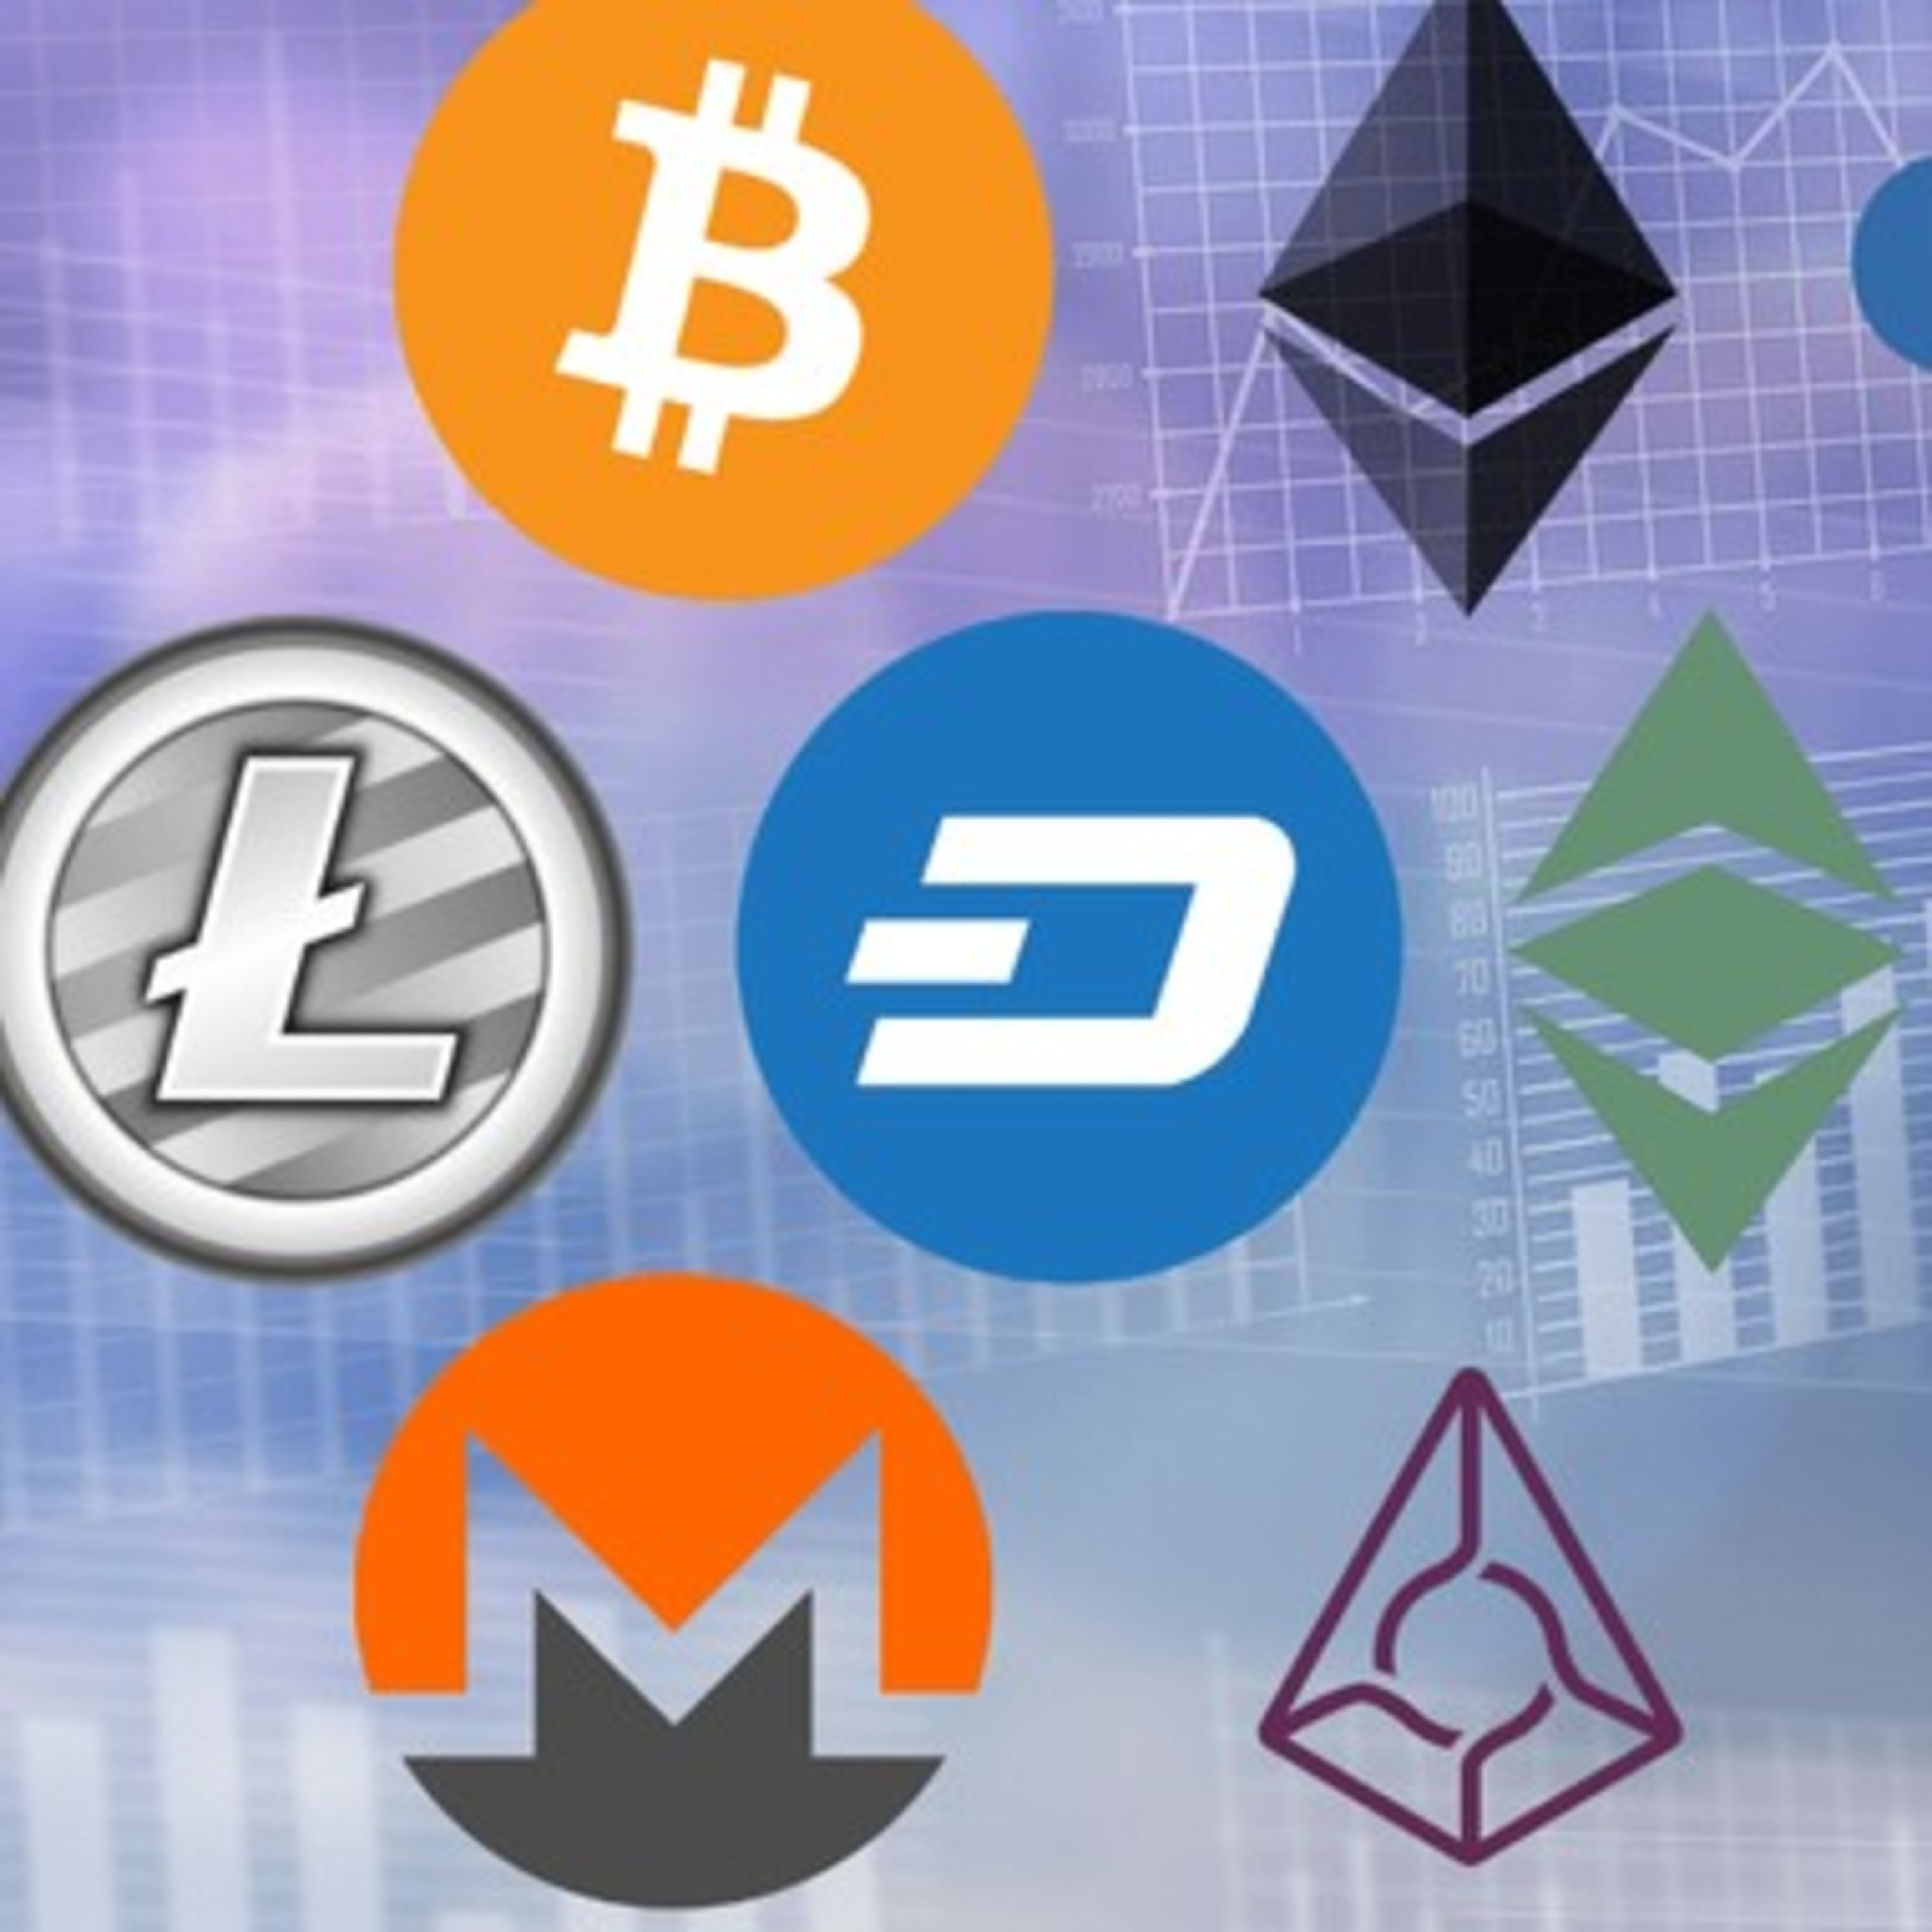 Part 2: The top 10 Cryptocurrencies: Their uses and per coin price.